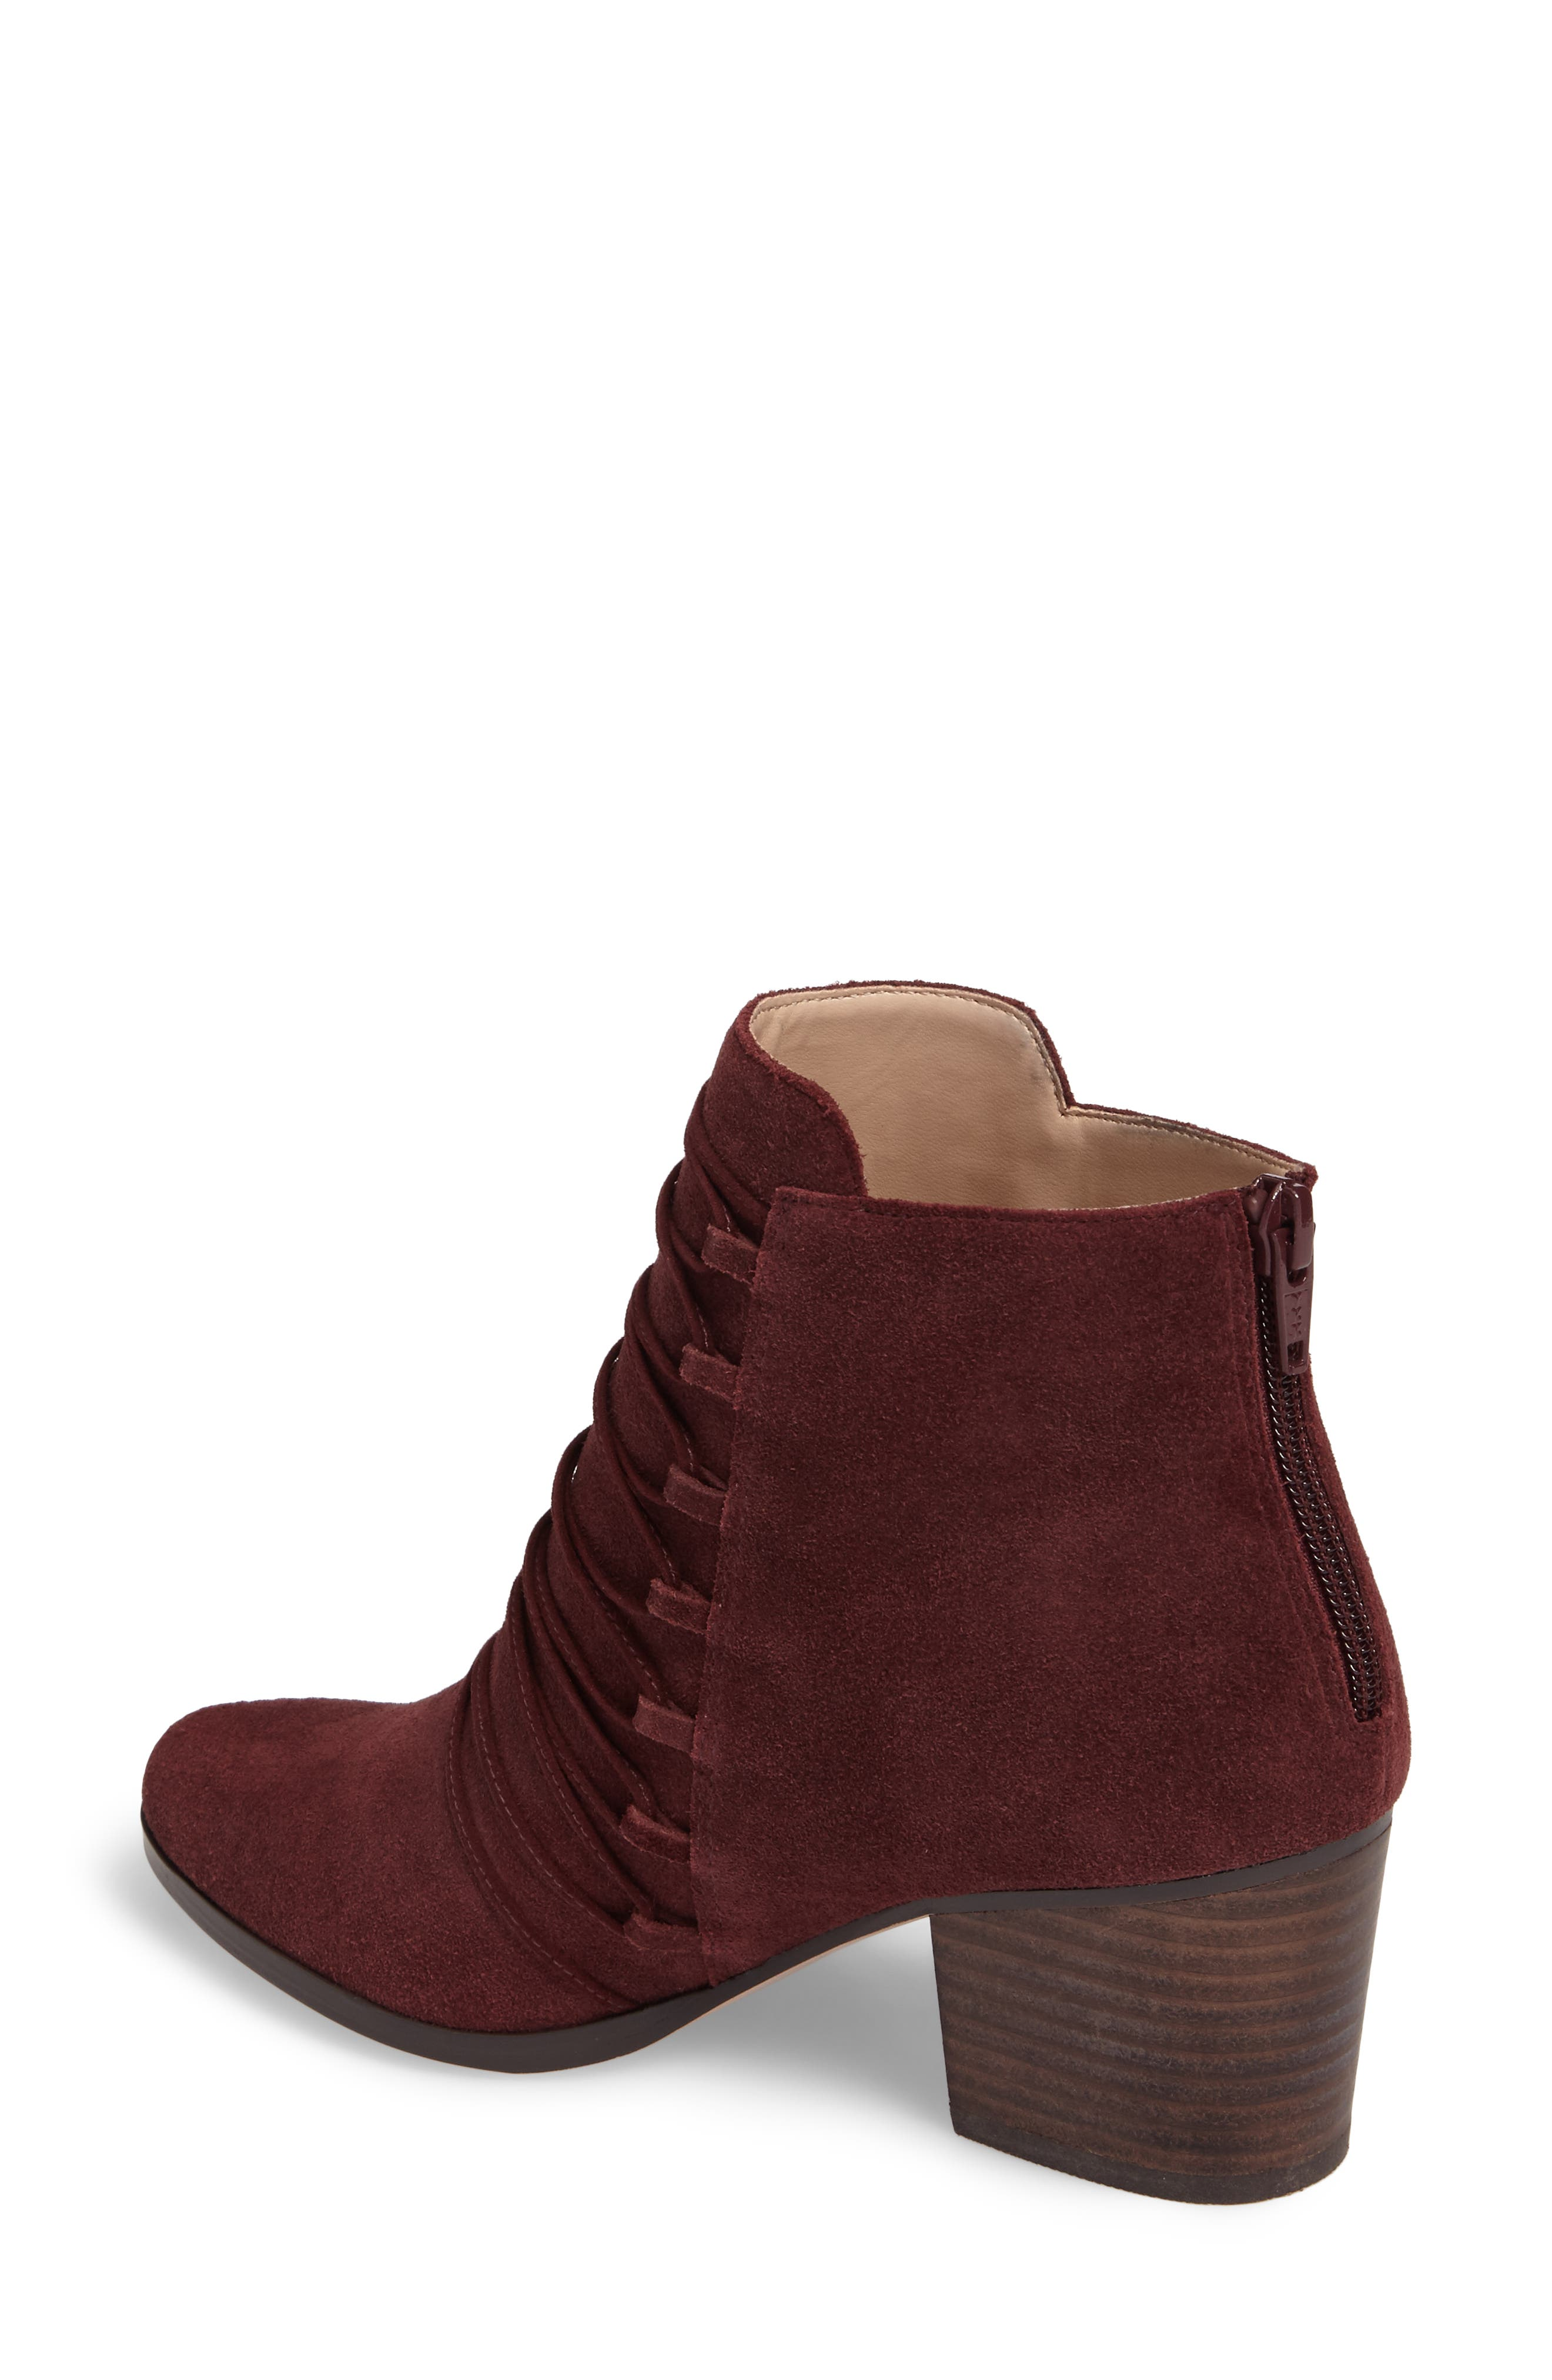 Bellevue Bootie,                             Alternate thumbnail 2, color,                             930